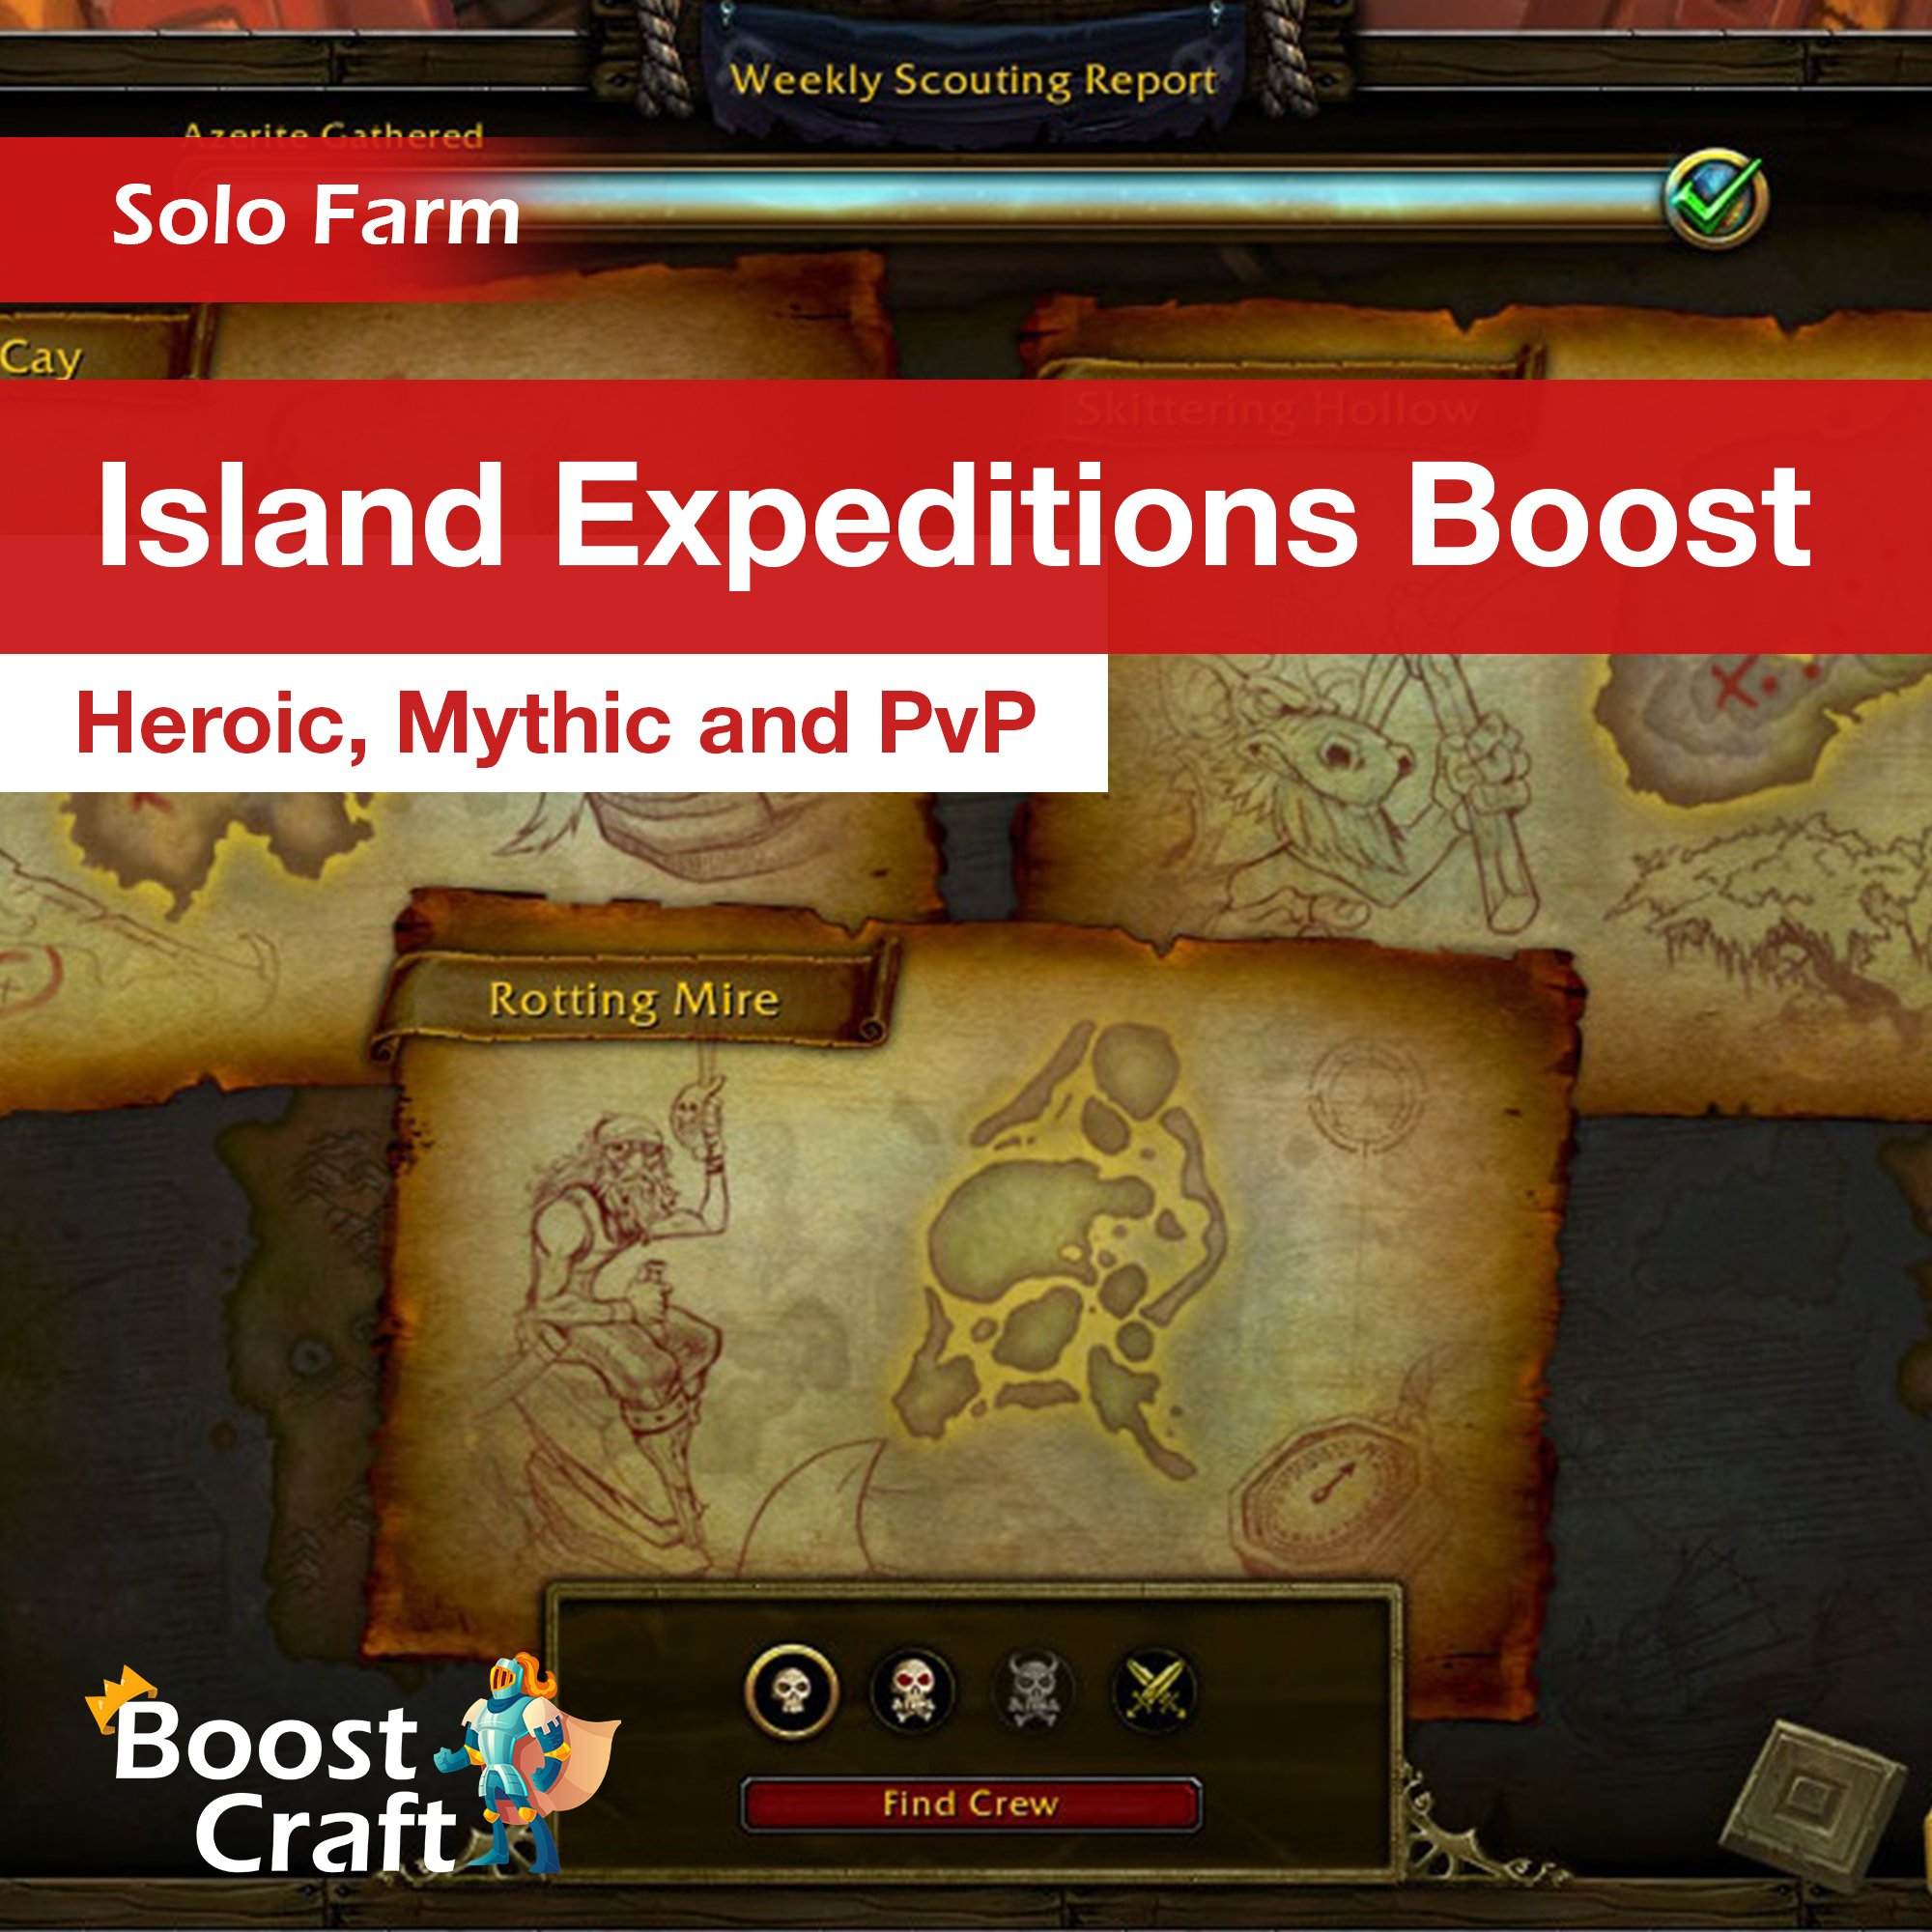 Island Expeditions (heroic/mythic/PvP) – Boost